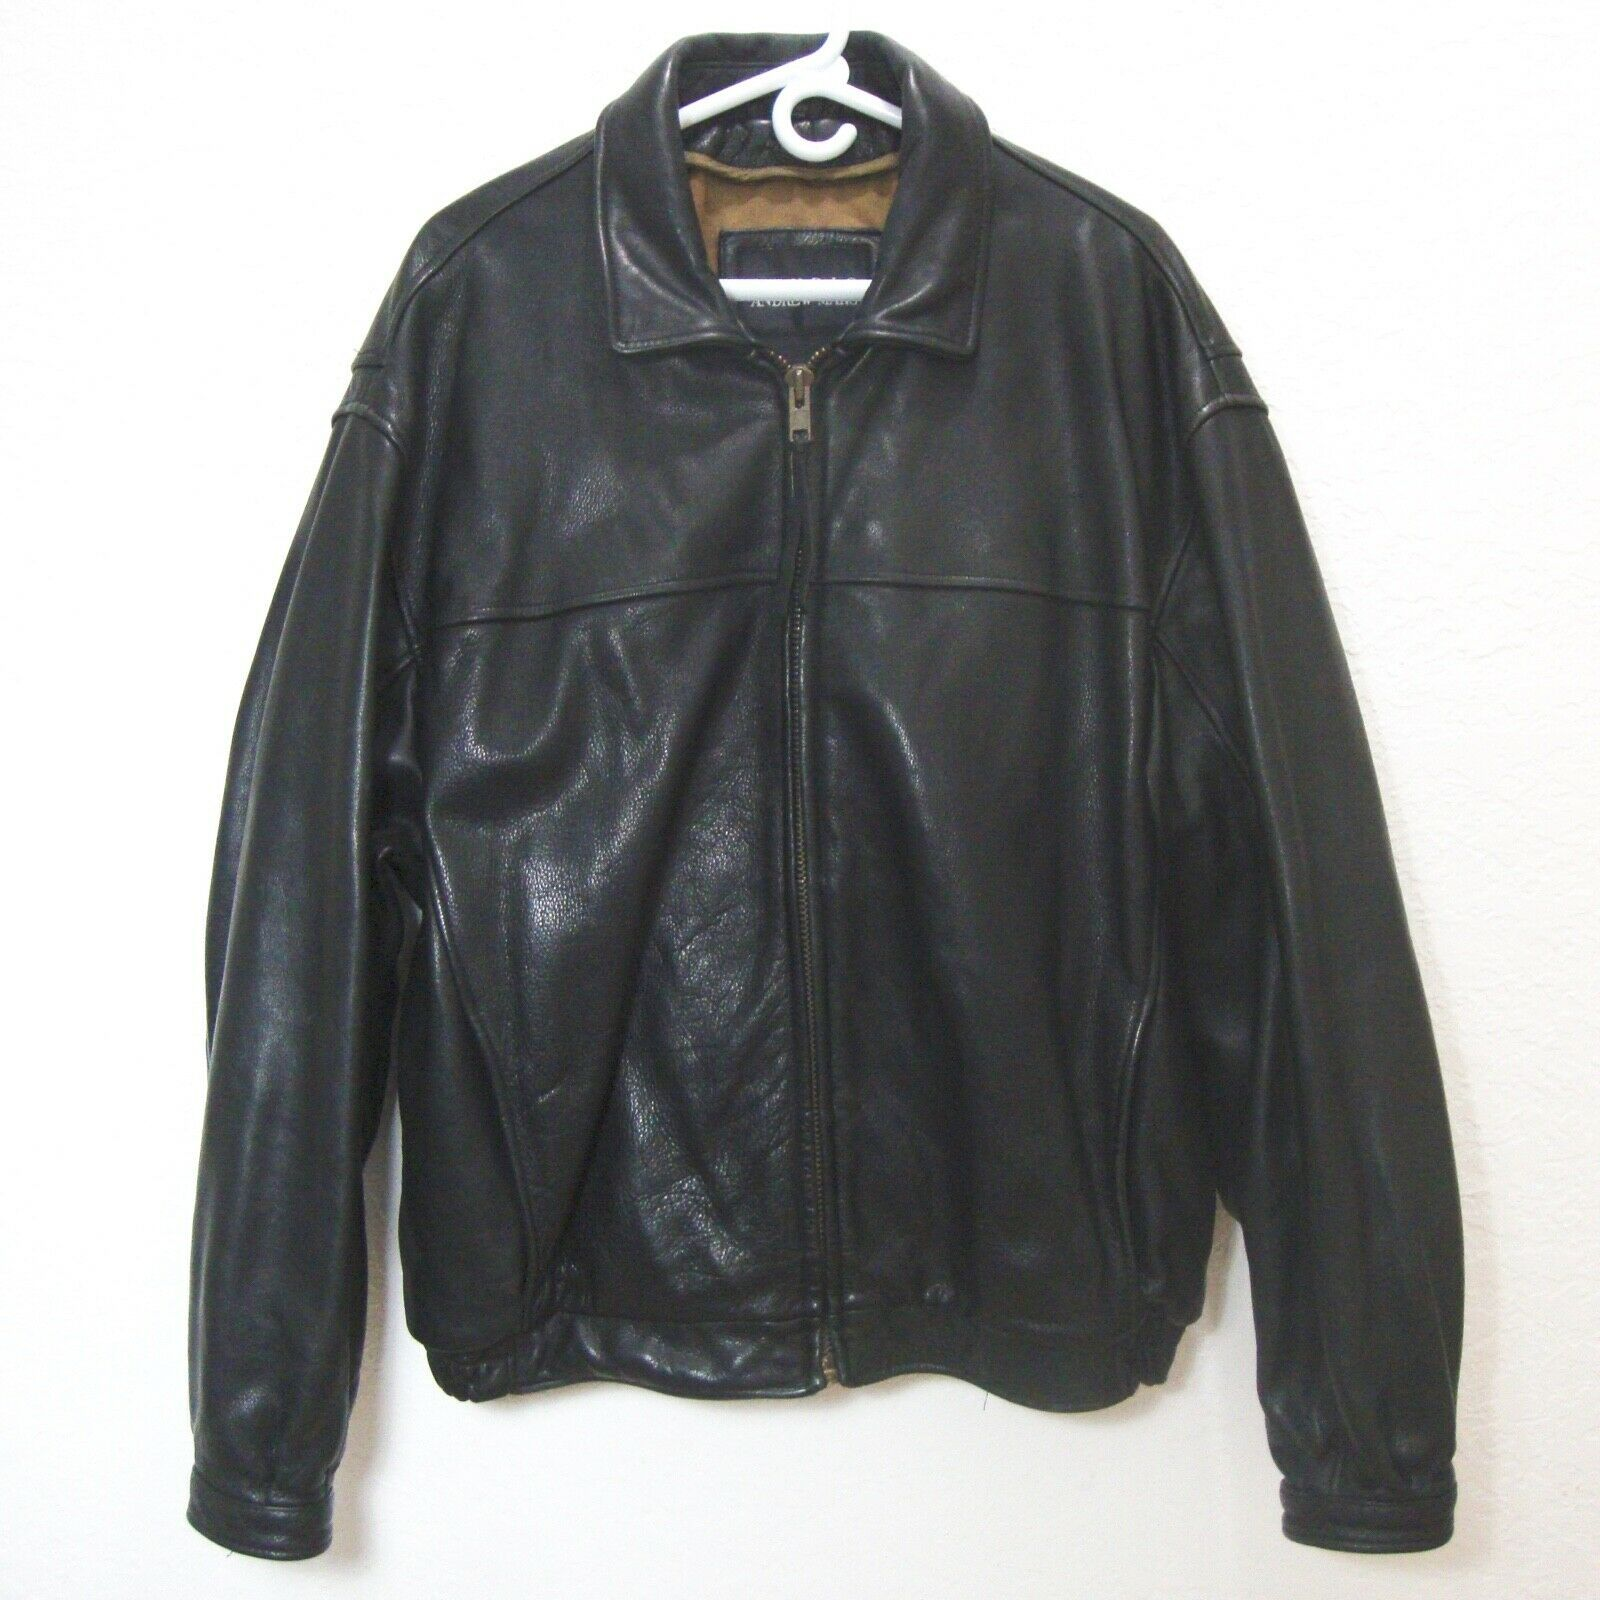 ANDREW MARC Black Leather Bomber Jacket Distressed Lined Zip Up Motorcycle XL